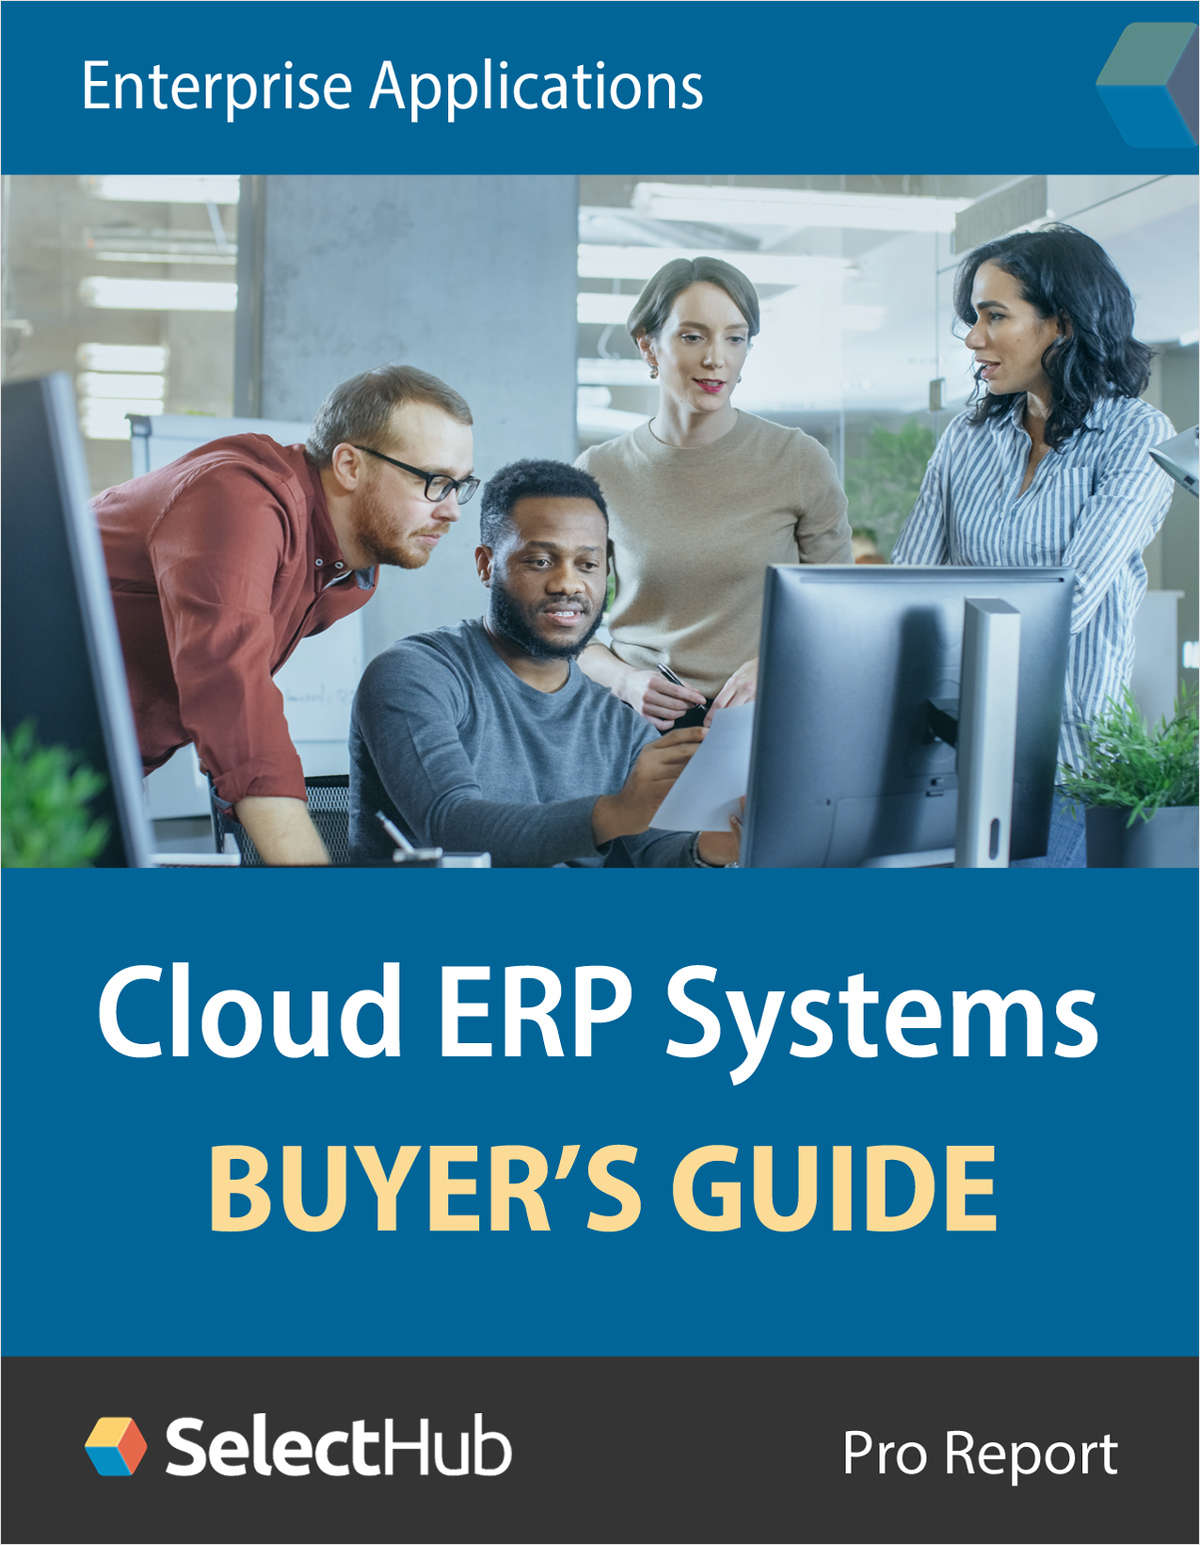 Cloud ERP Systems Buyer's Guide 2020